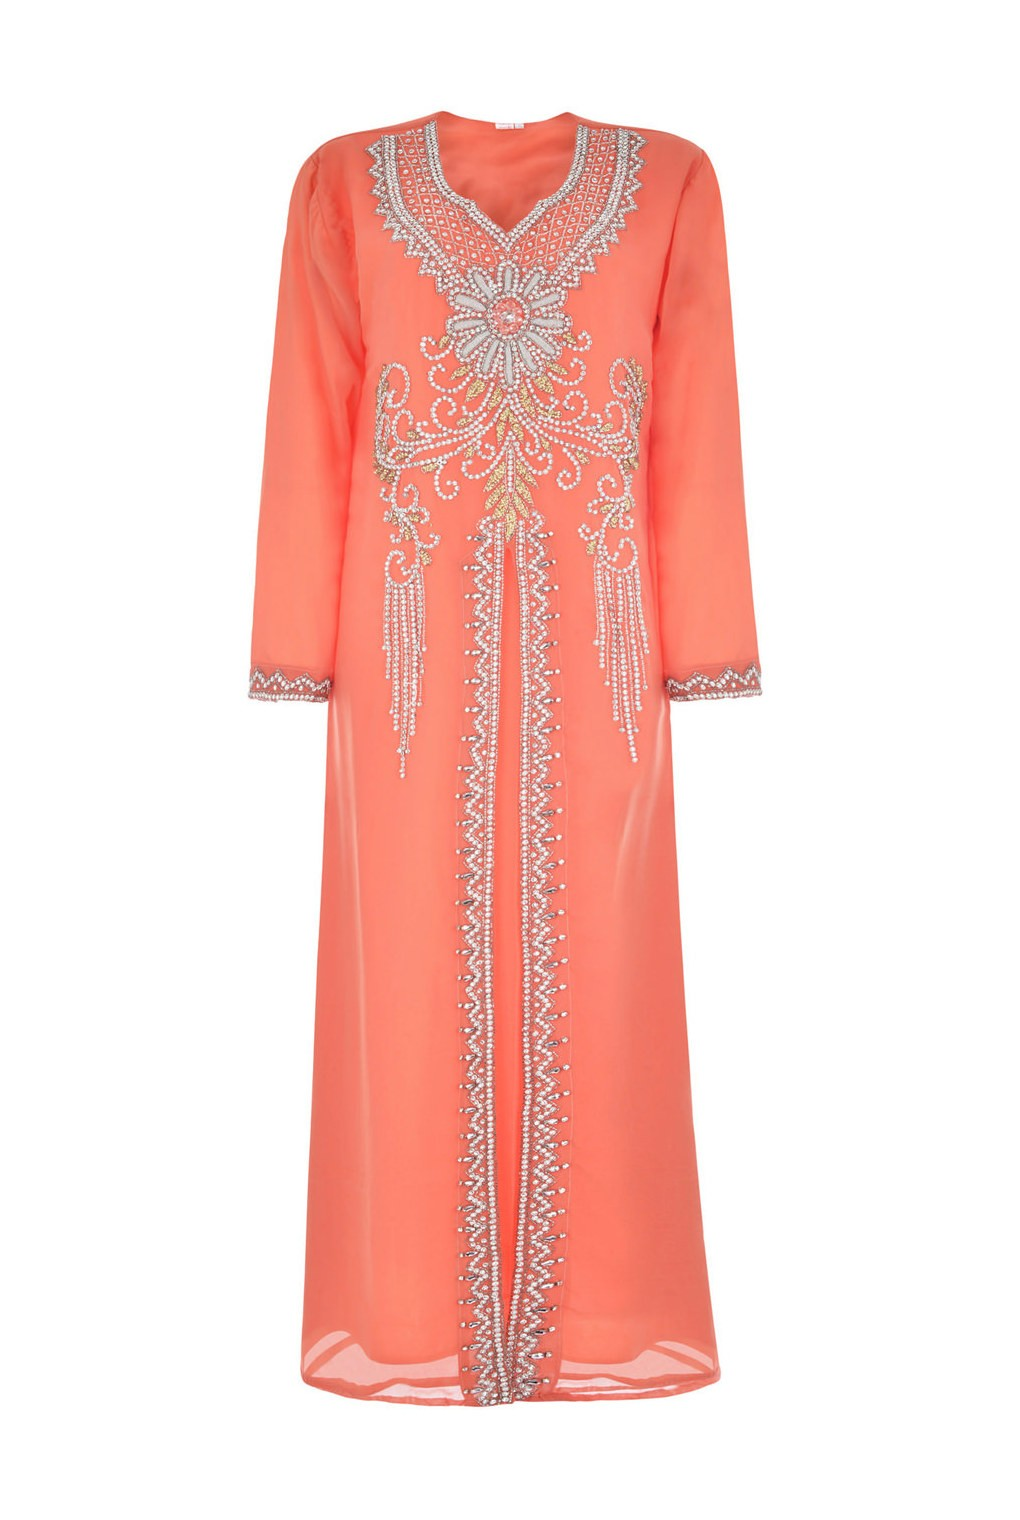 Maria Dubai Kaftan Dress Image